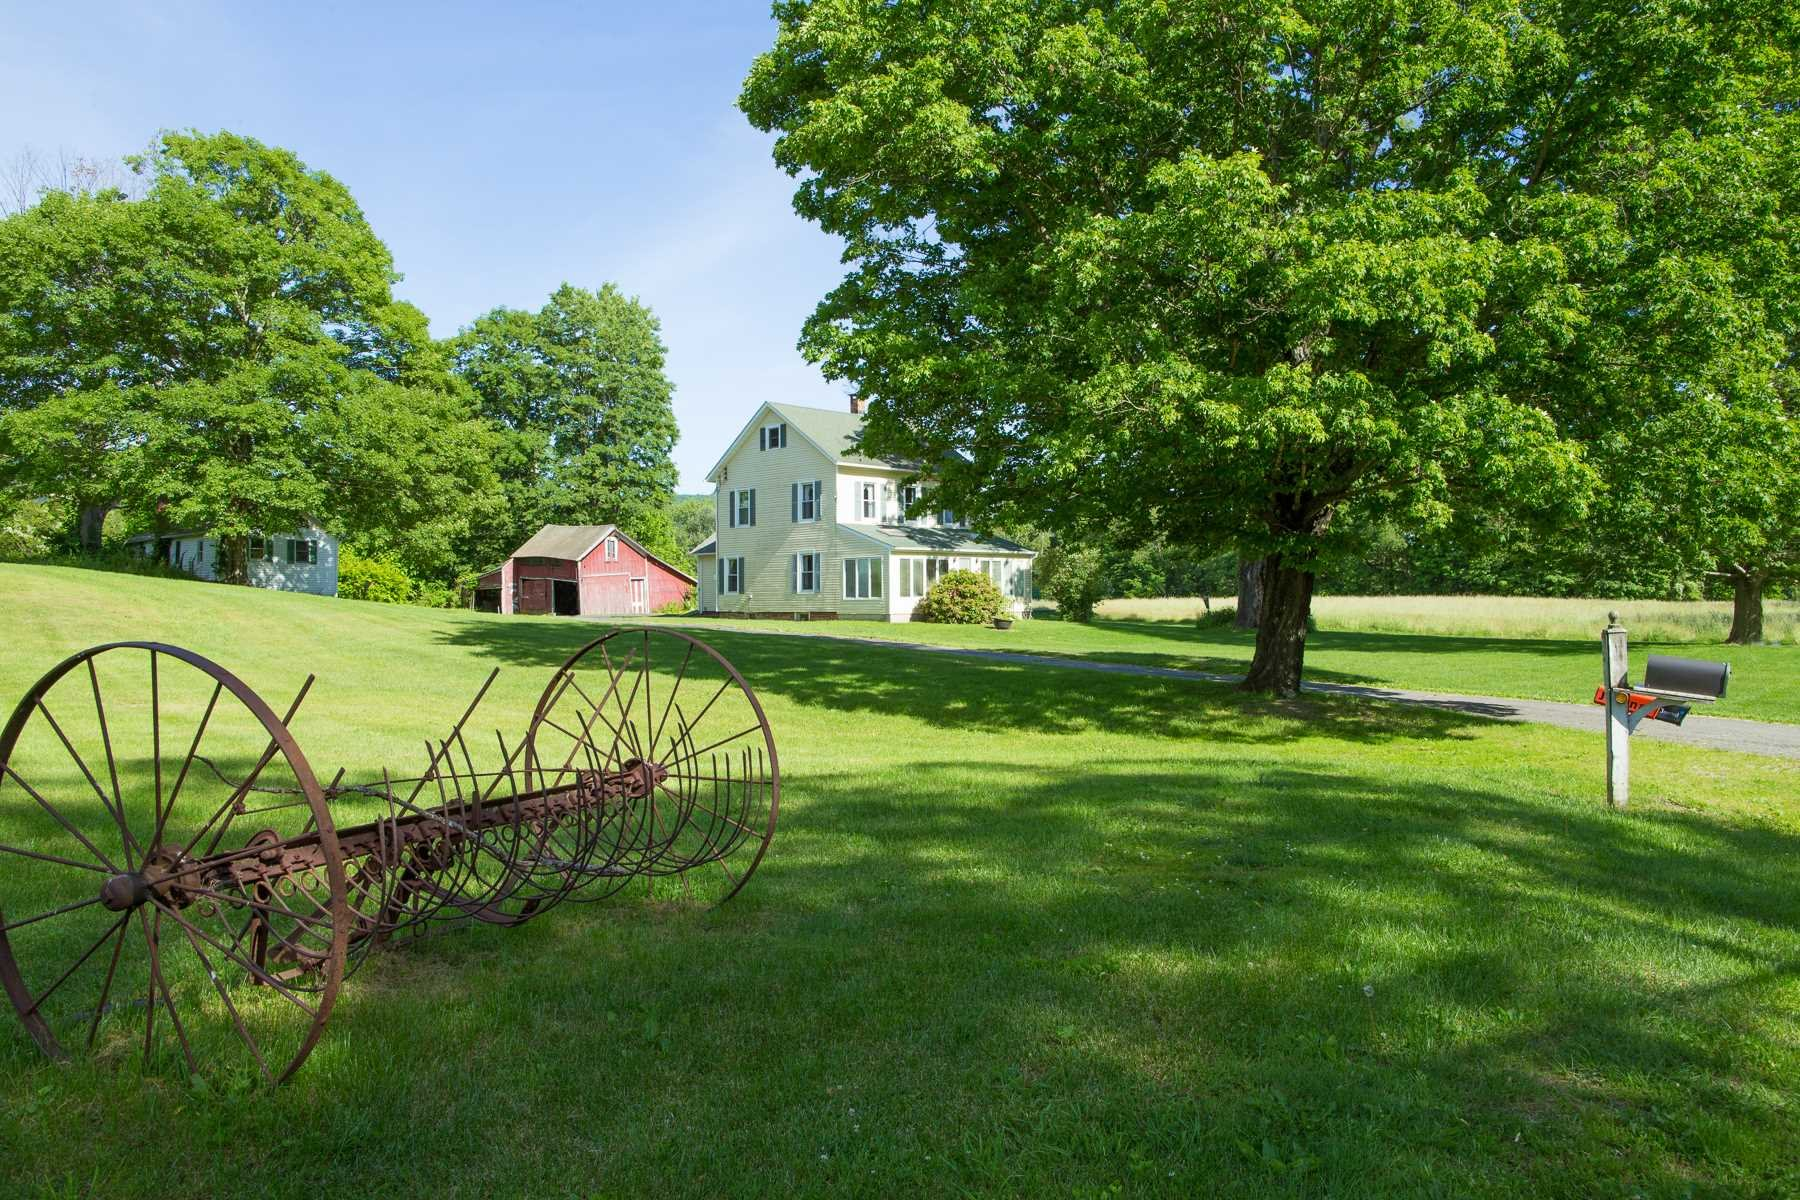 Single Family Home for Sale at 1100 OLD ROUTE 22 1100 OLD ROUTE 22 Dover Plains, New York 12522 United States